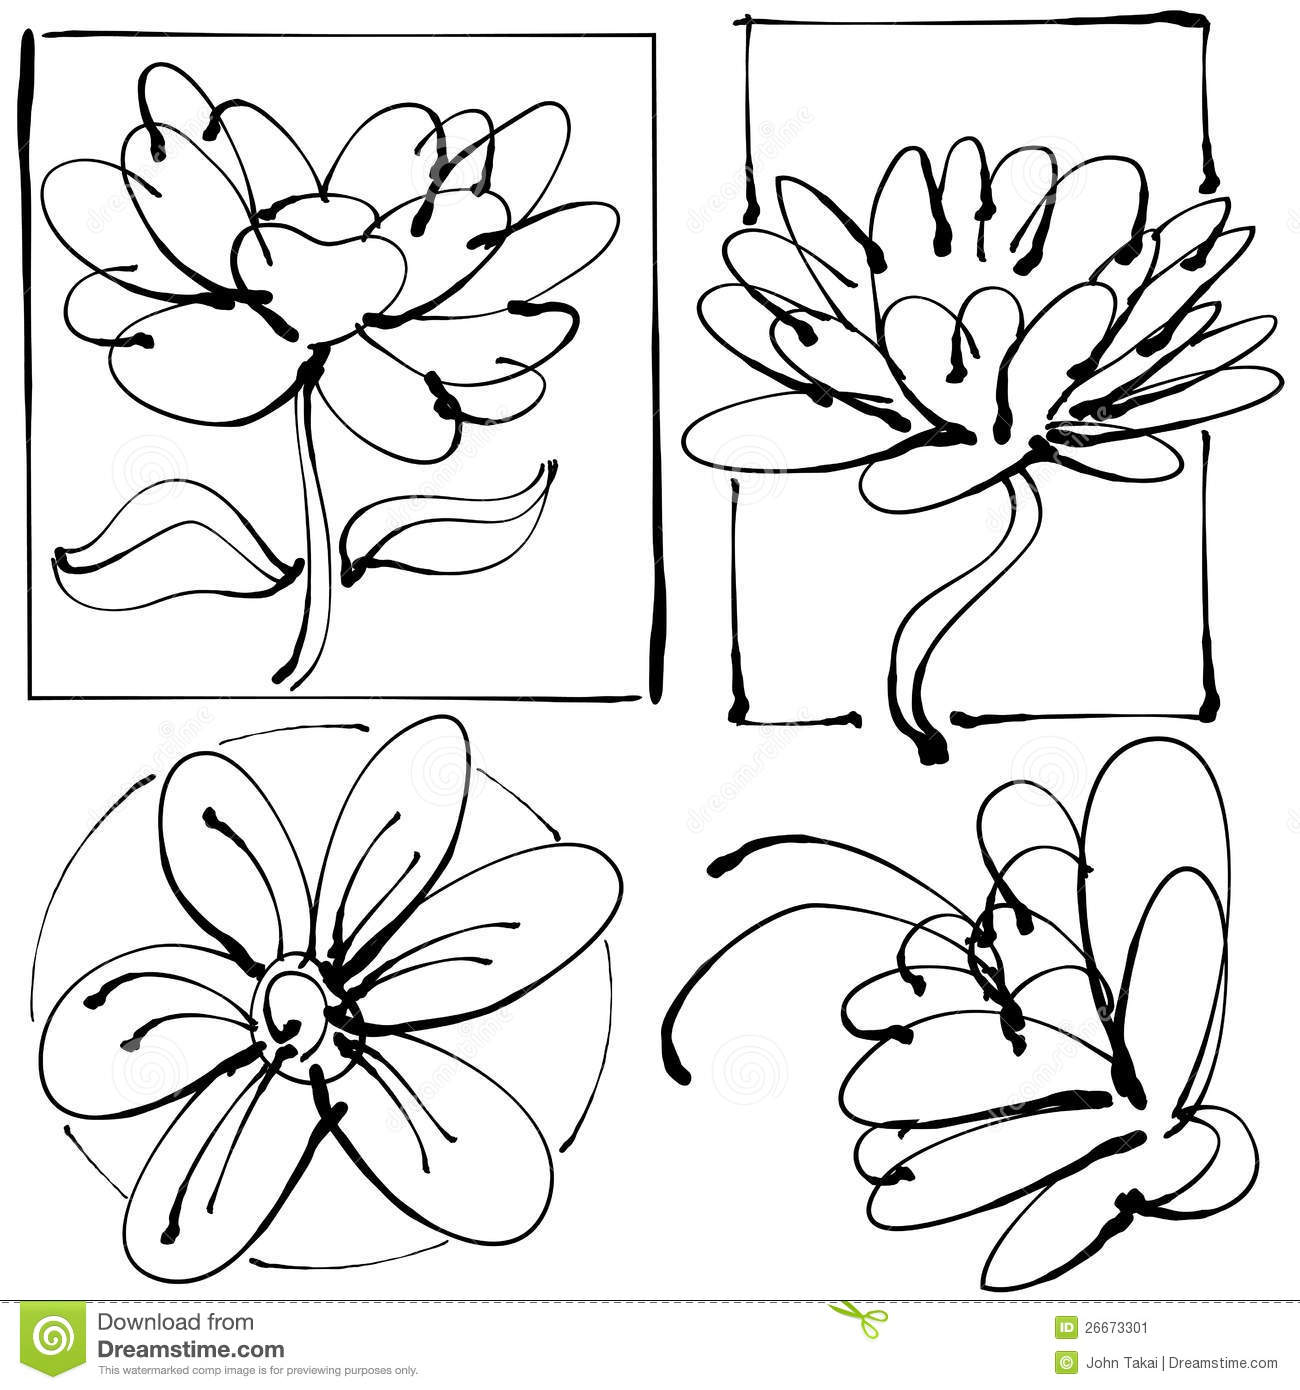 Abstract Line Drawing Flowers : Abstract flower drawing stock image